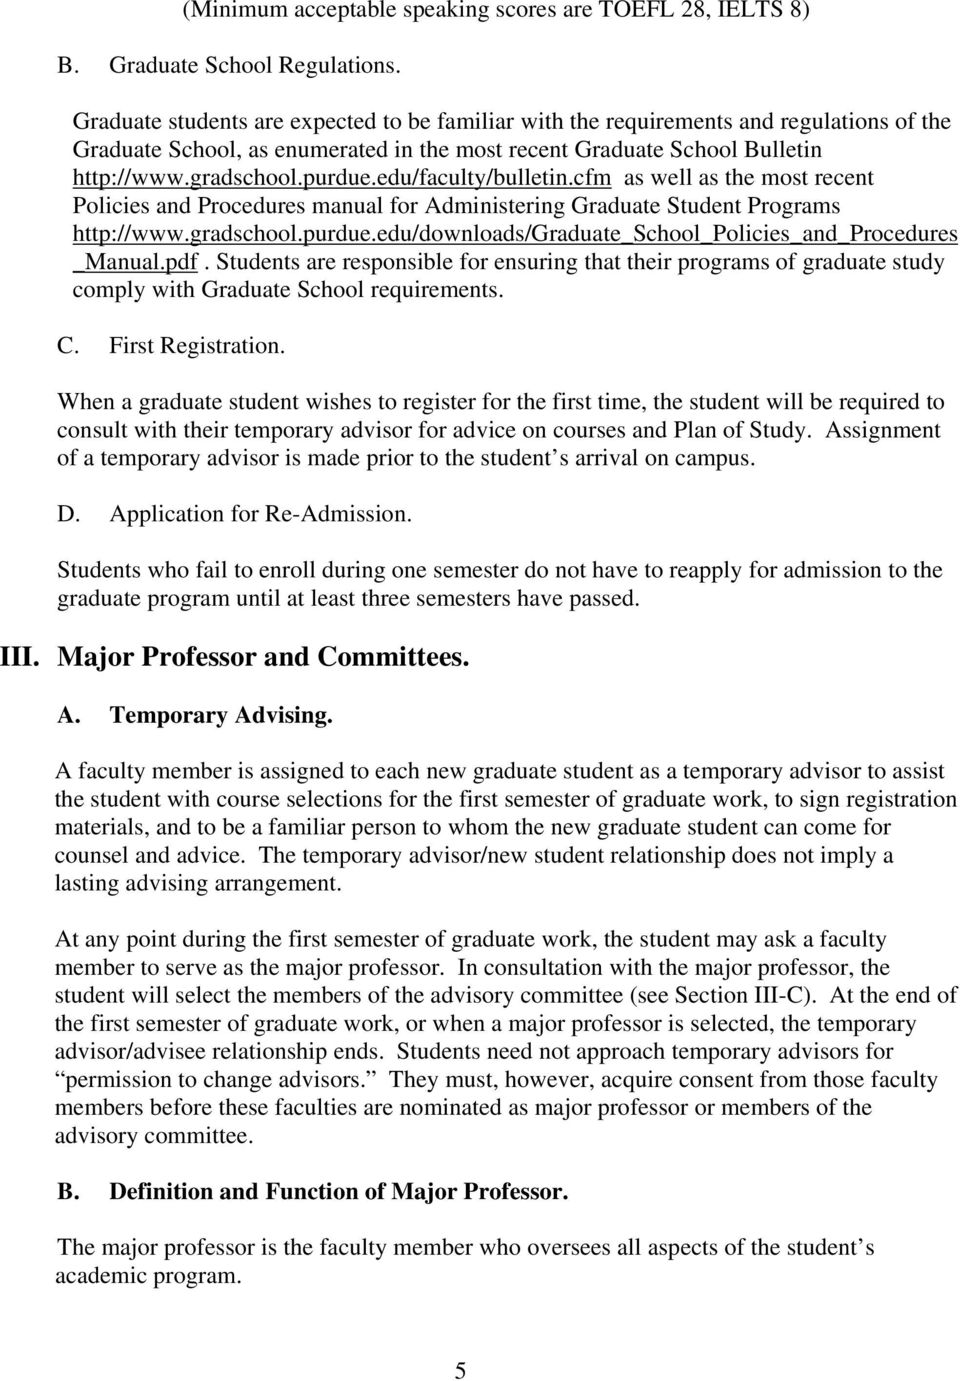 edu/faculty/bulletin.cfm as well as the most recent Policies and Procedures manual for Administering Graduate Student Programs http://www.gradschool.purdue.